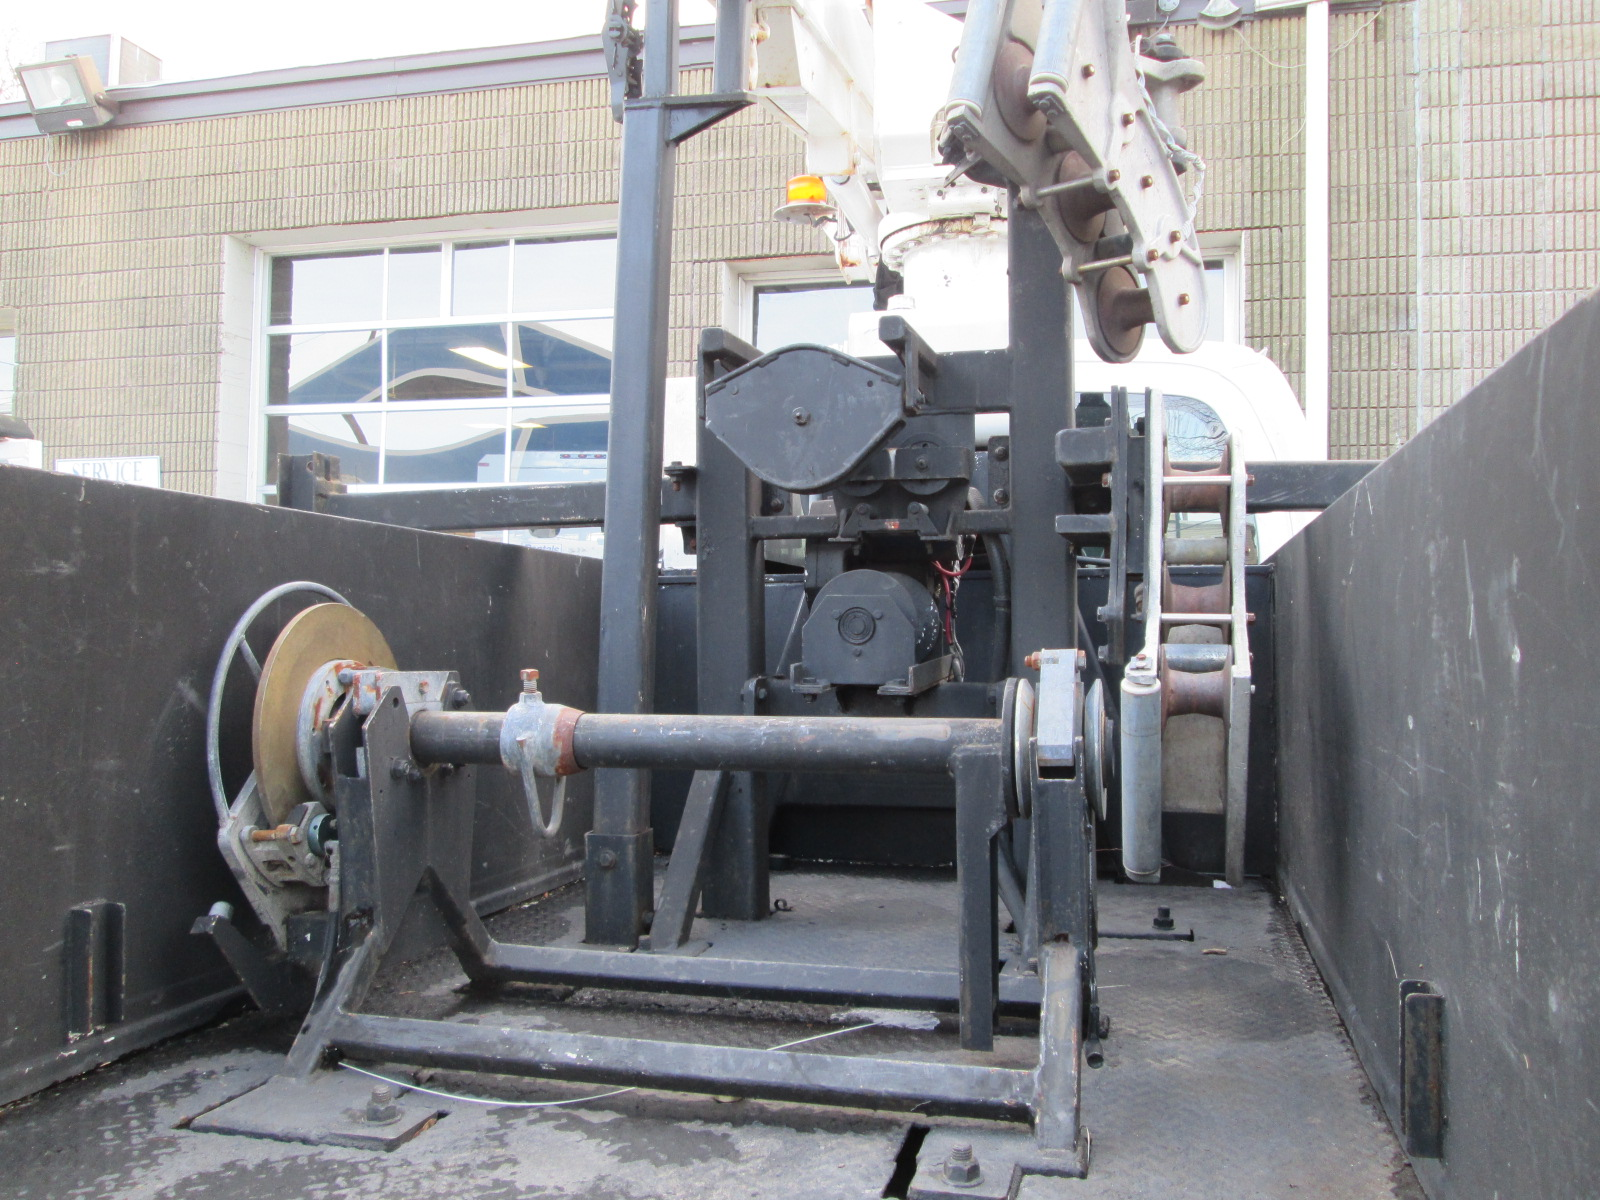 Hire Our Altec AS40P Cable Placer - CSTG roup